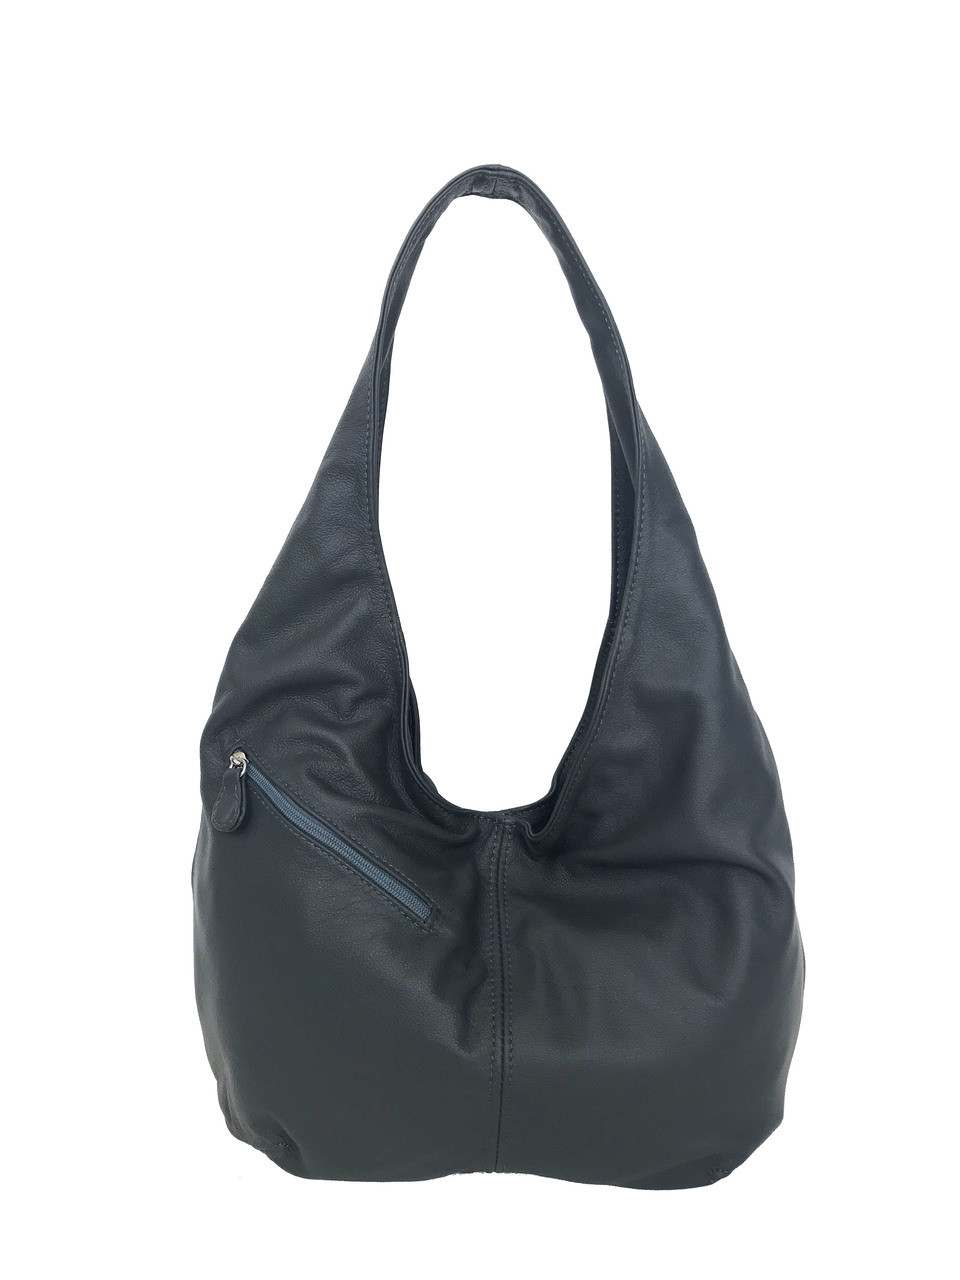 a15439ee83cf Gray Leather Hobo Bag w  Pockets